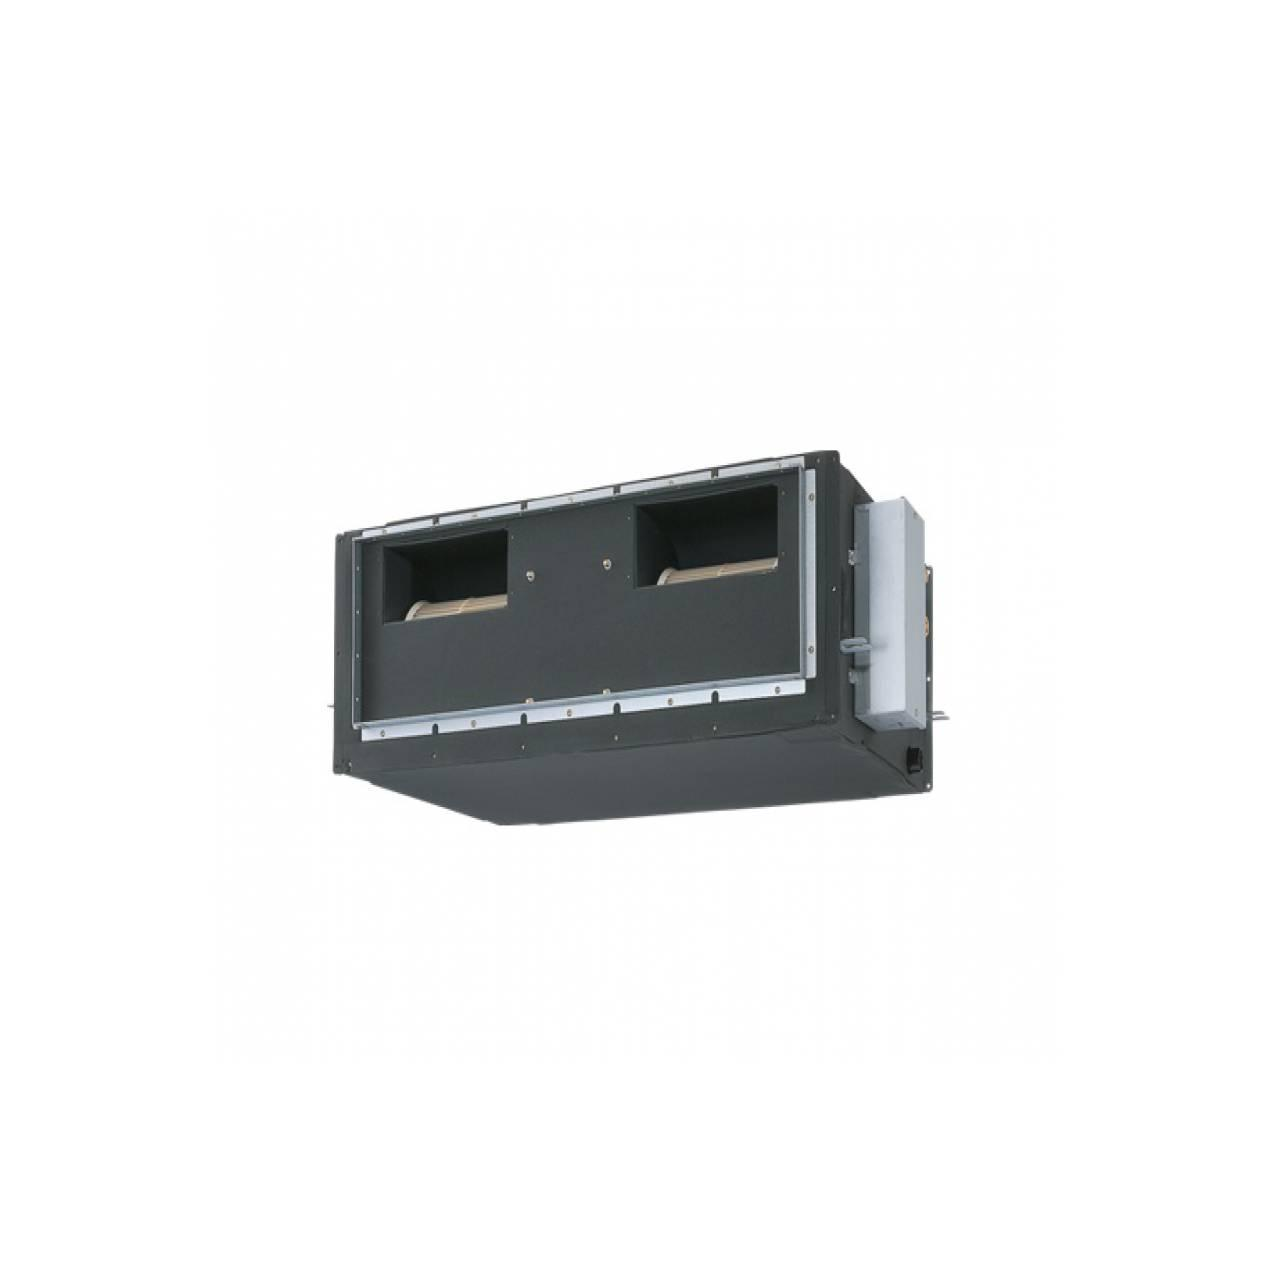 AC Ceiling Concealed Duct R410A Panasonic CS-F50DD2E5 6 PK Malaysia